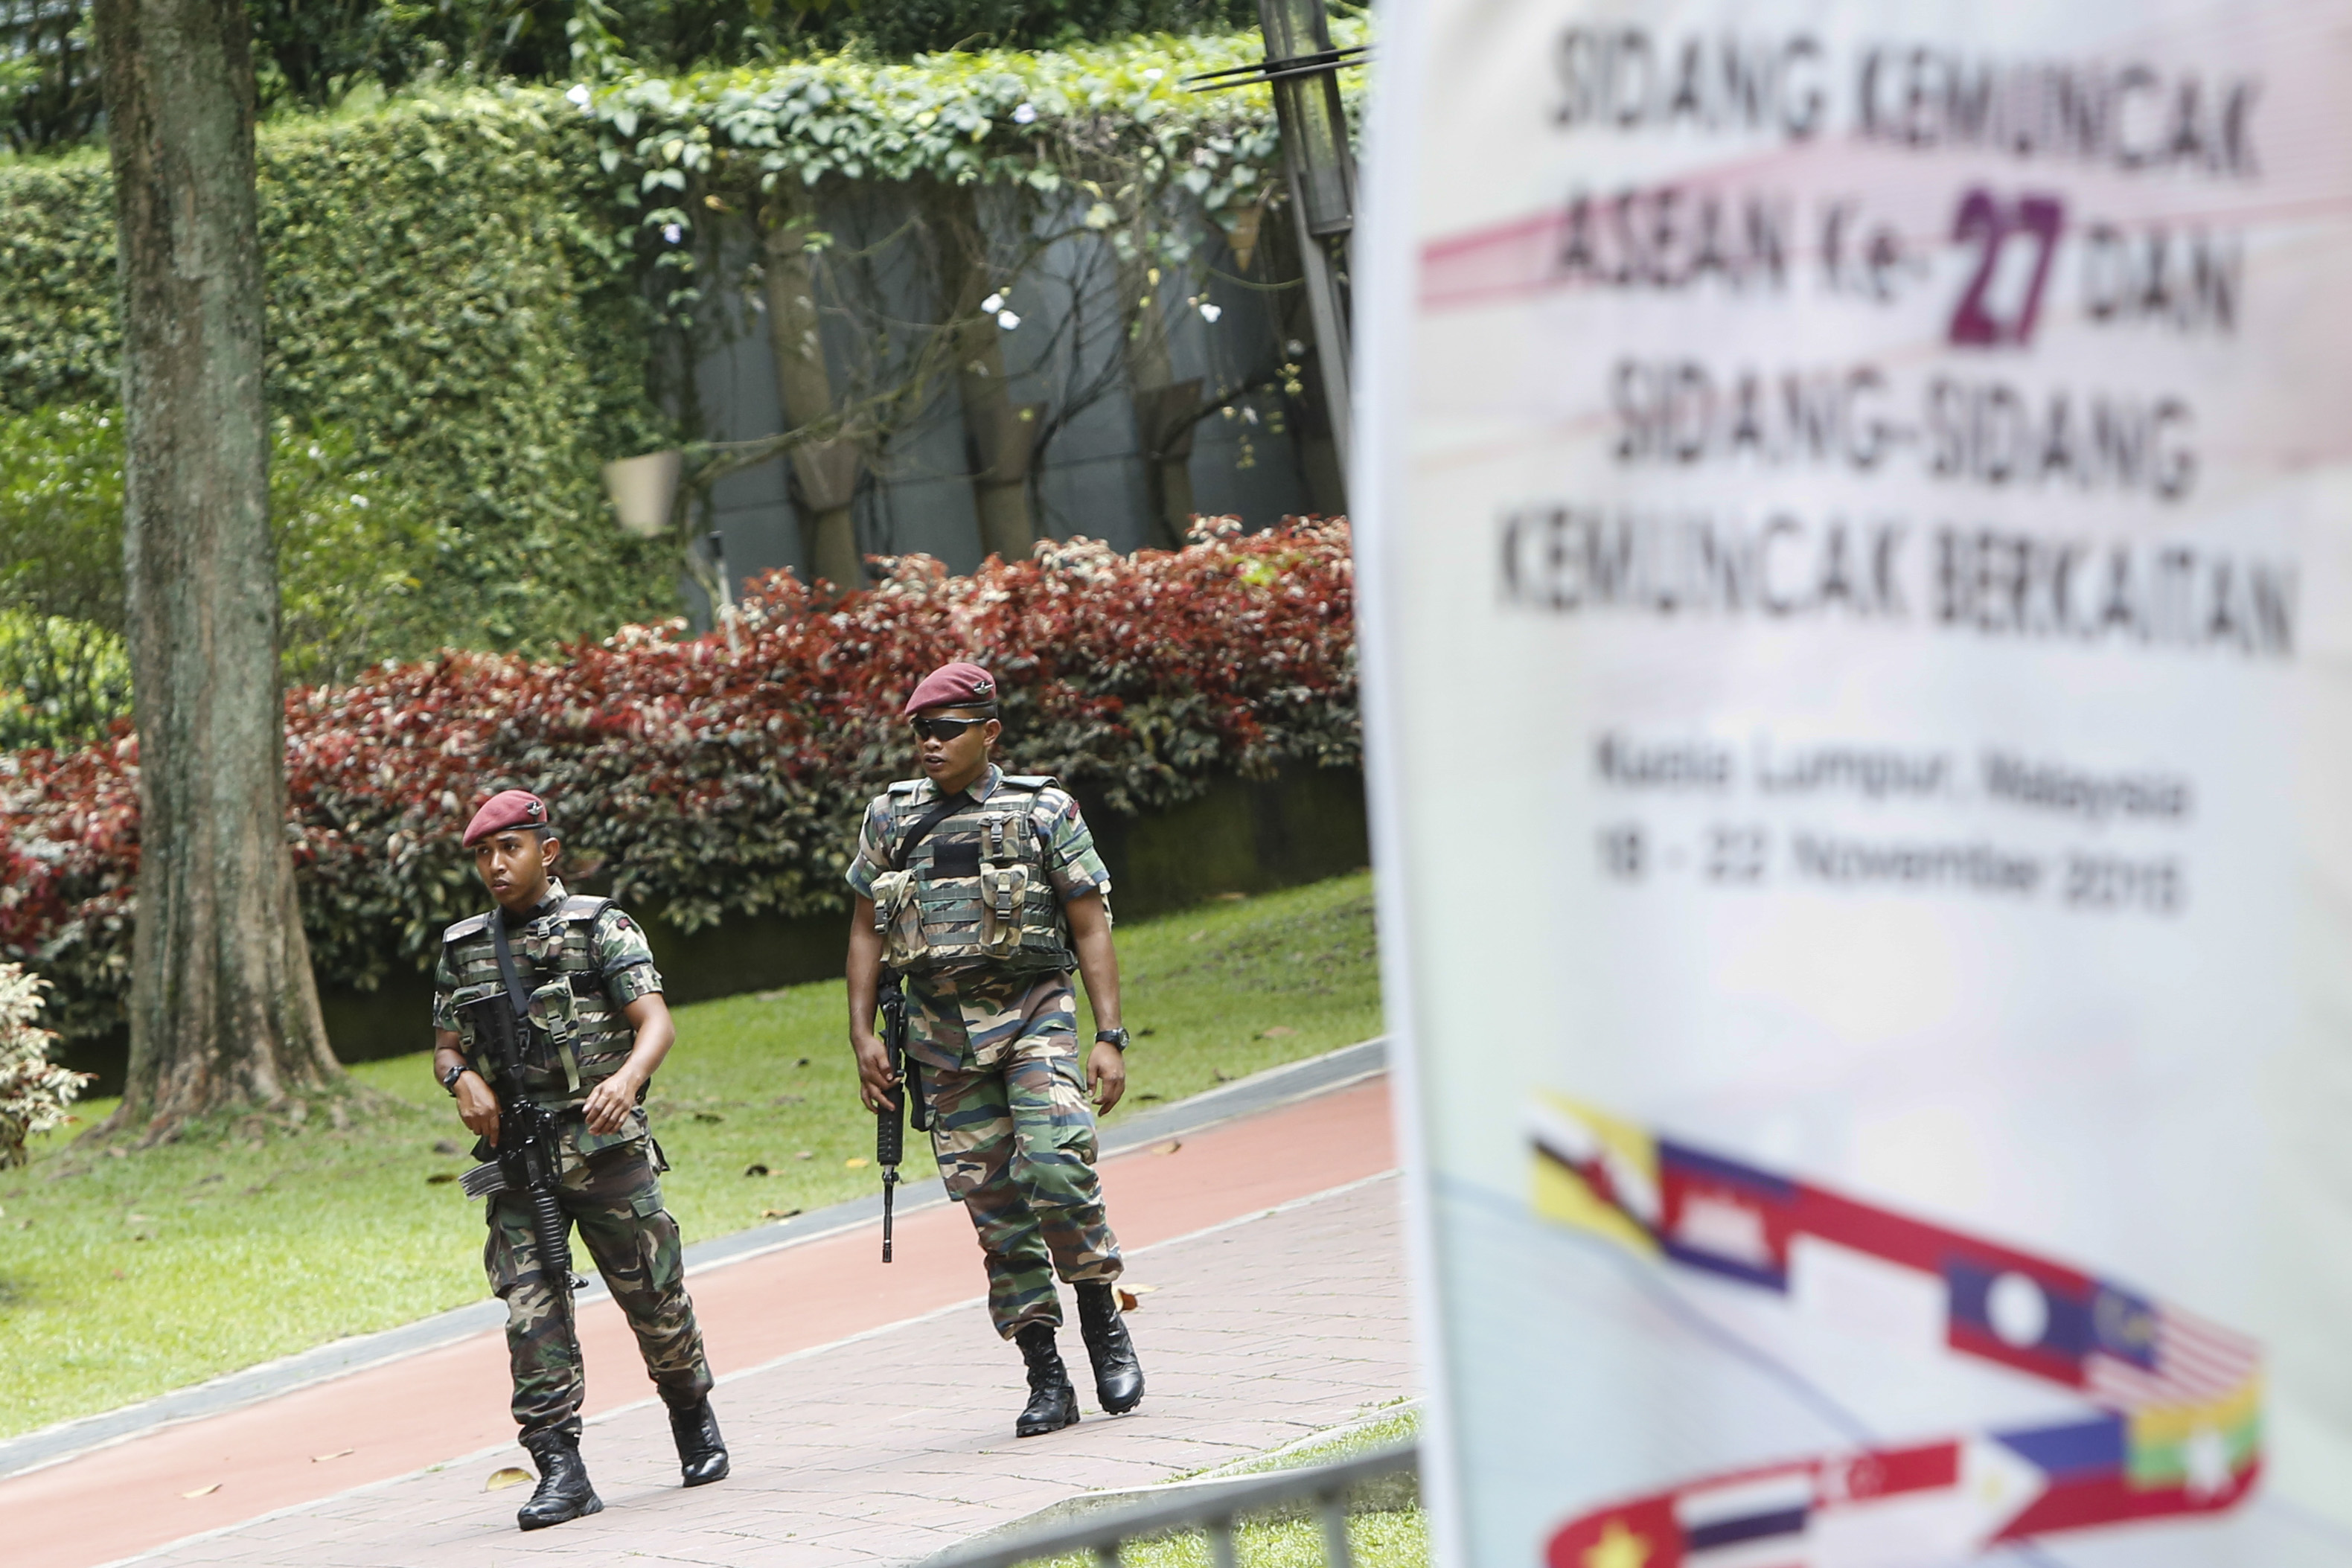 Malaysian military personnel patrol at the 27th Association of Southeast Asian Nations (ASEAN) summit in Kuala Lumpur, Malaysia, Thursday, Nov. 19, 2015.